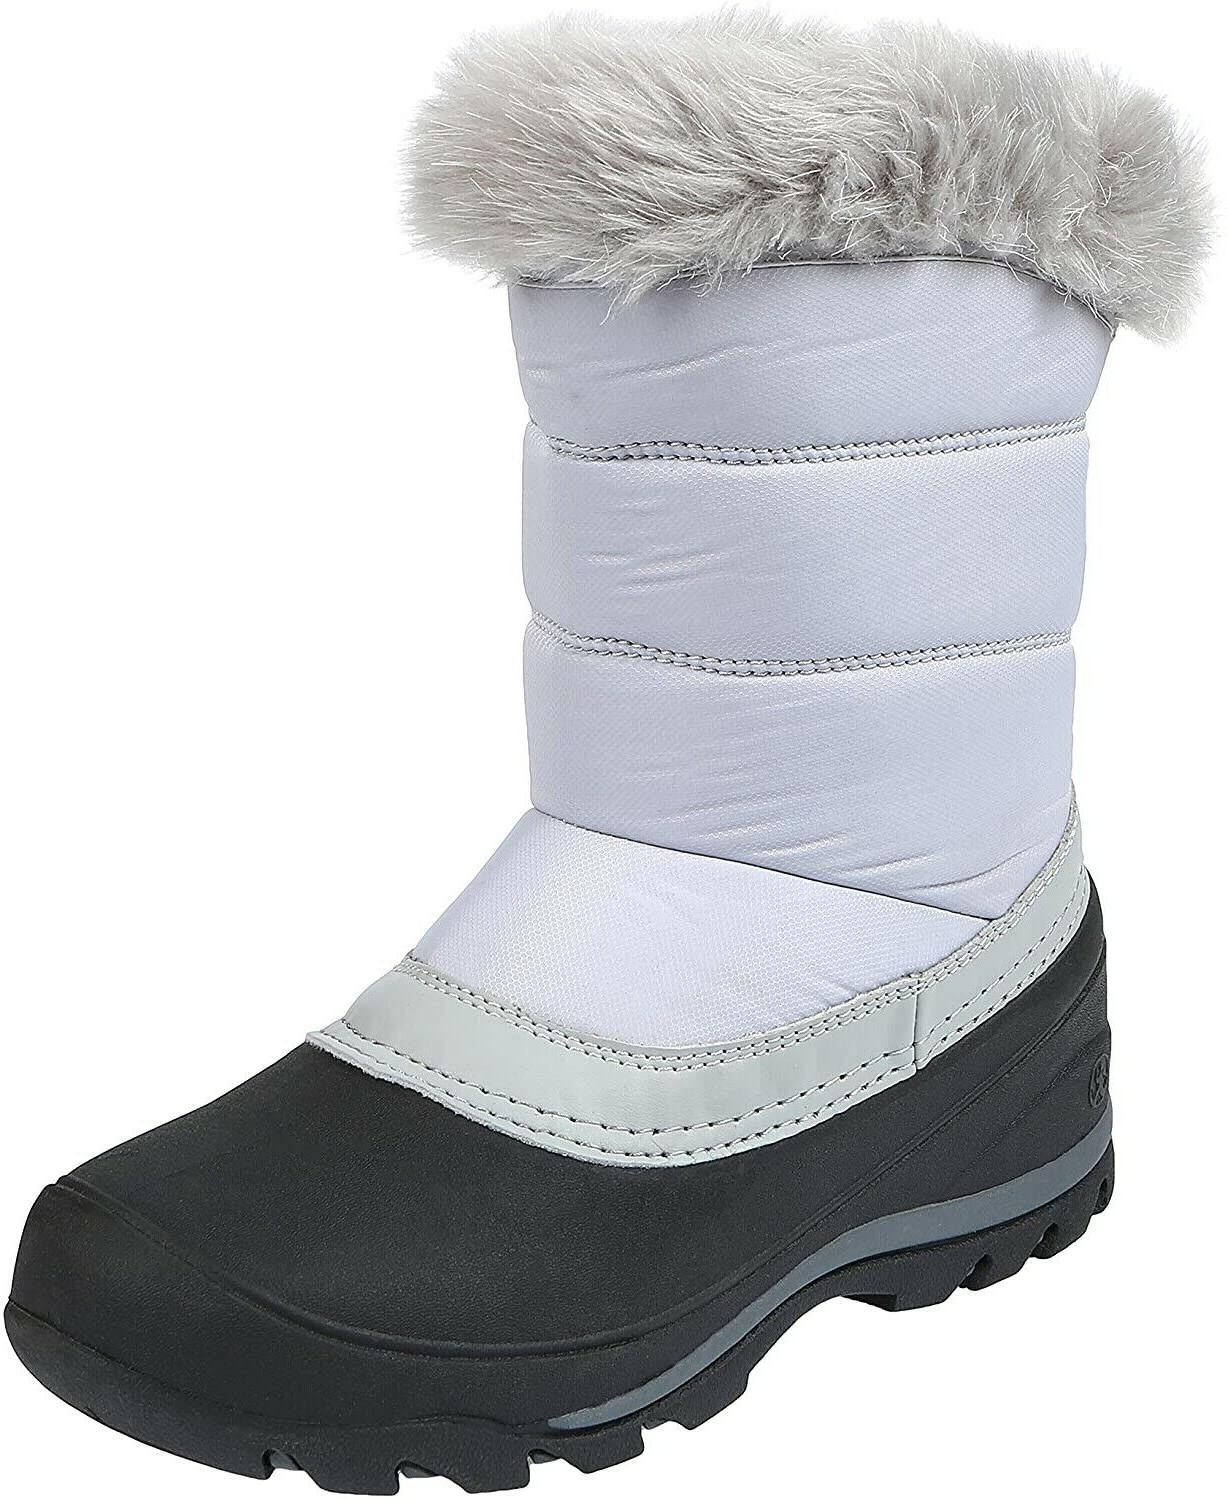 ainsley women s water resistant 3m thinsulate